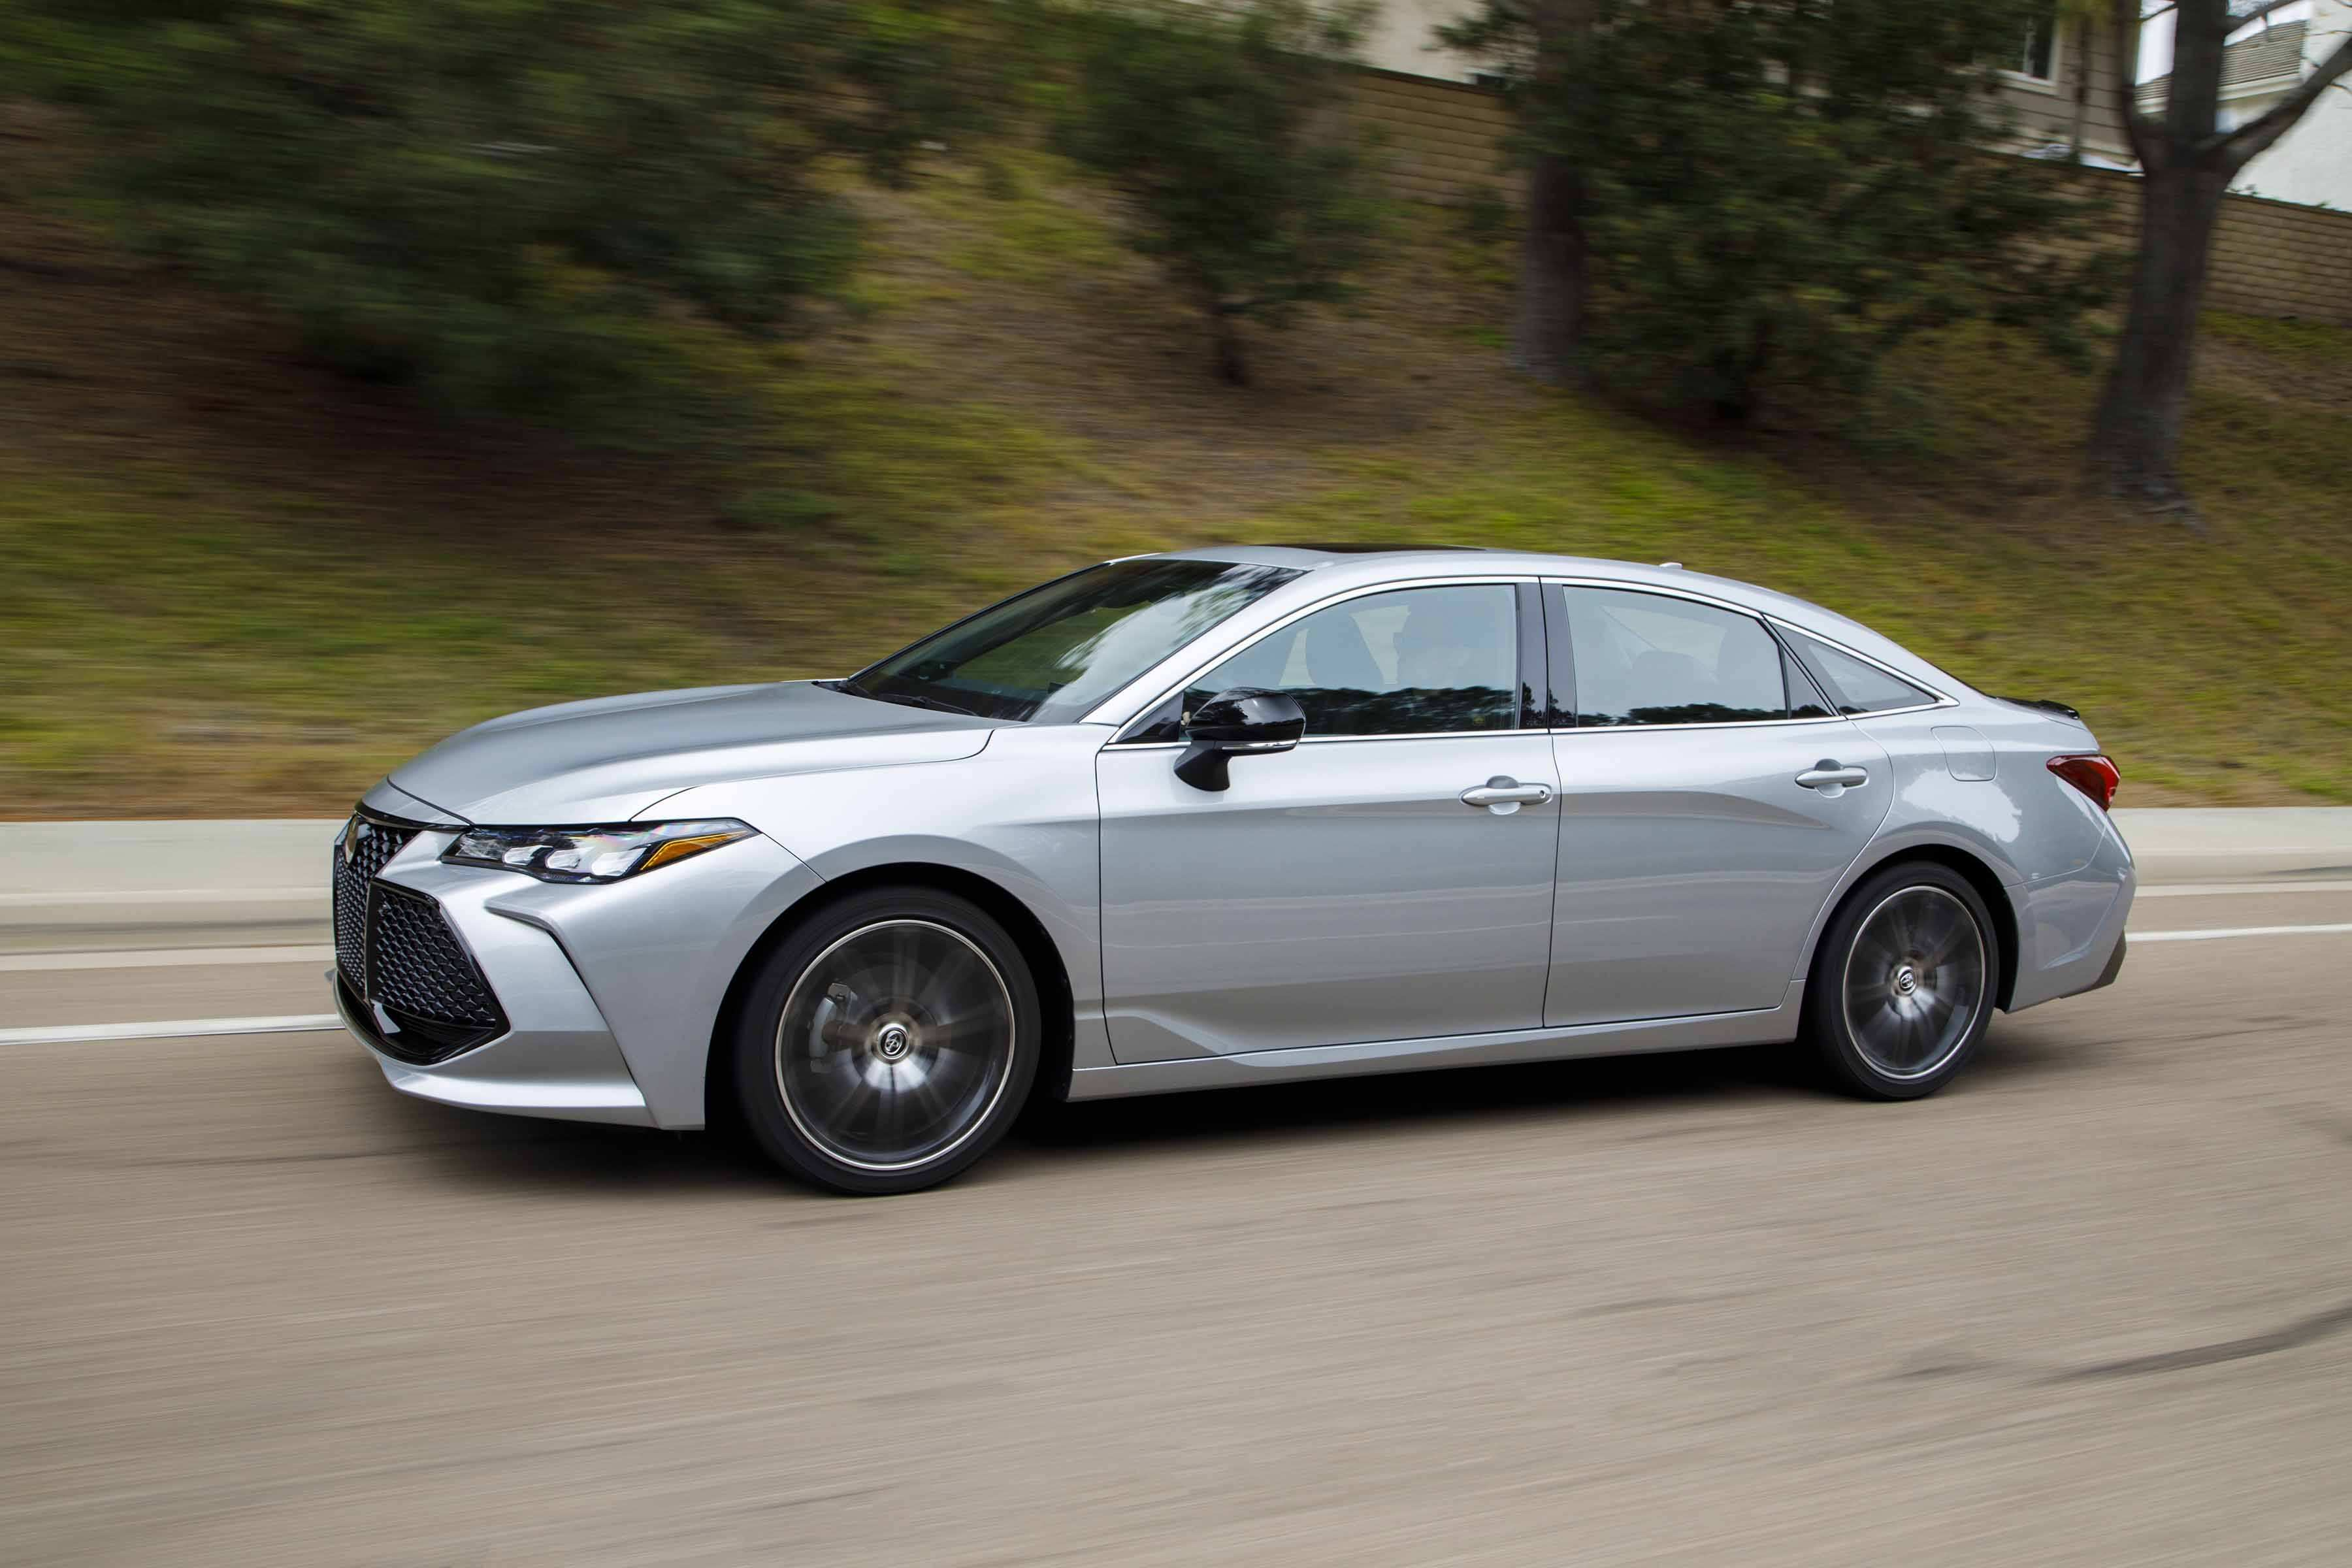 34 Gallery of New Toyota Avalon 2019 Review Exterior And Interior Review Spy Shoot with New Toyota Avalon 2019 Review Exterior And Interior Review